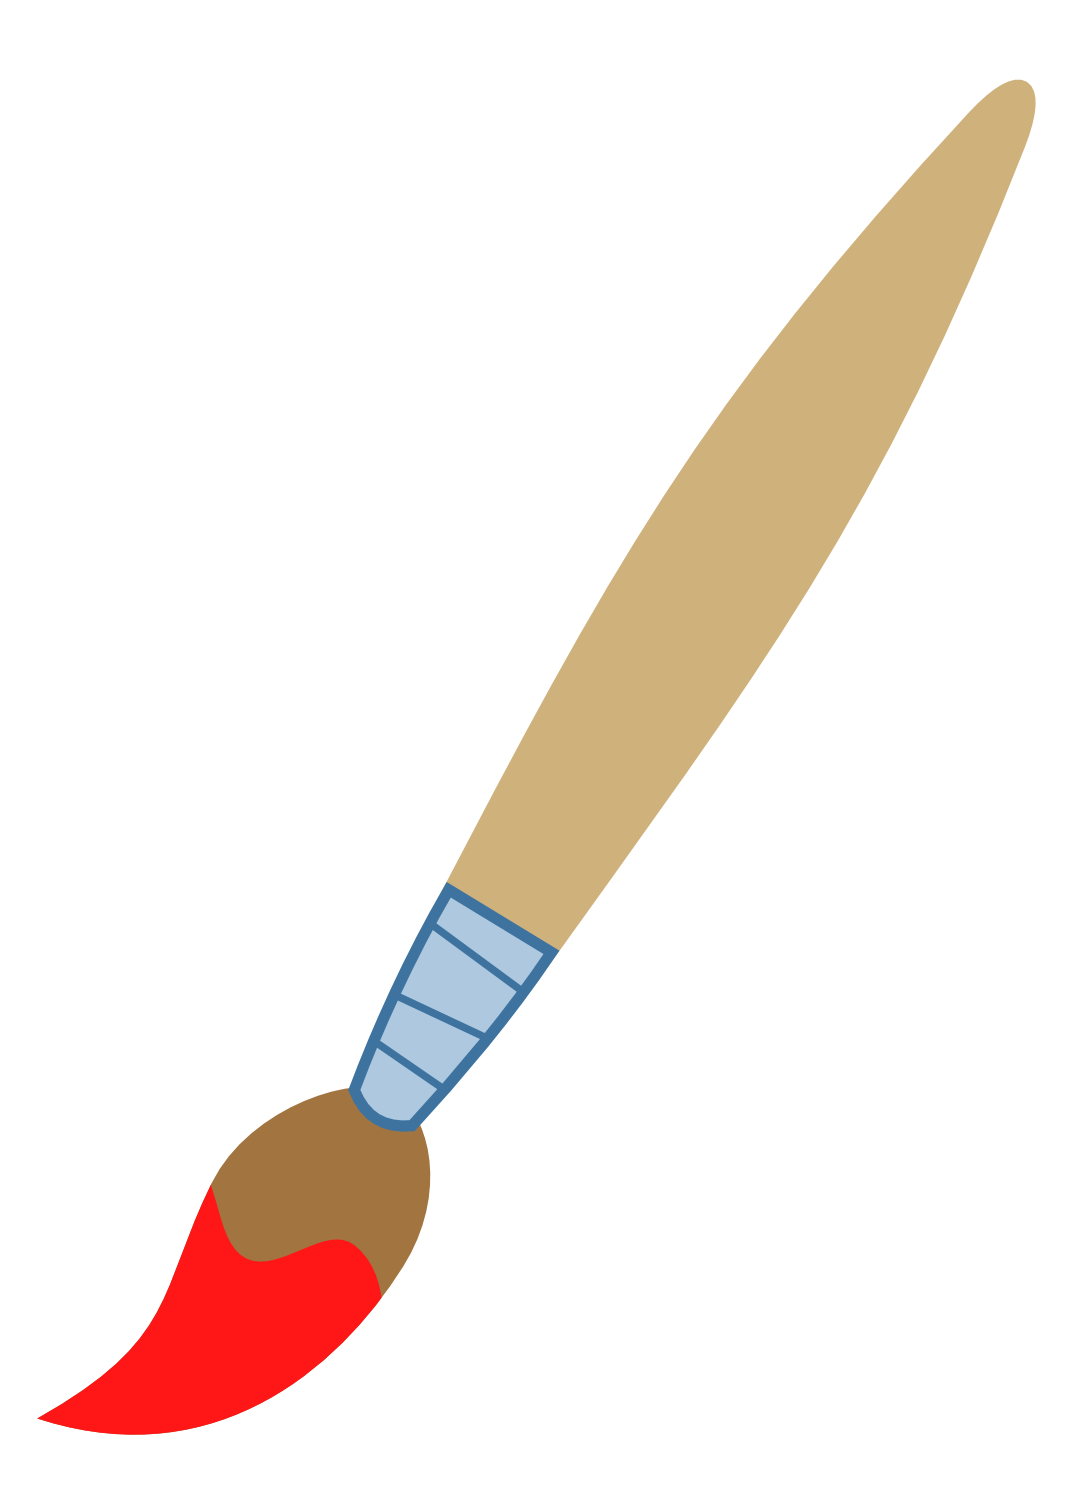 Paintbrush painting png. I like to draw